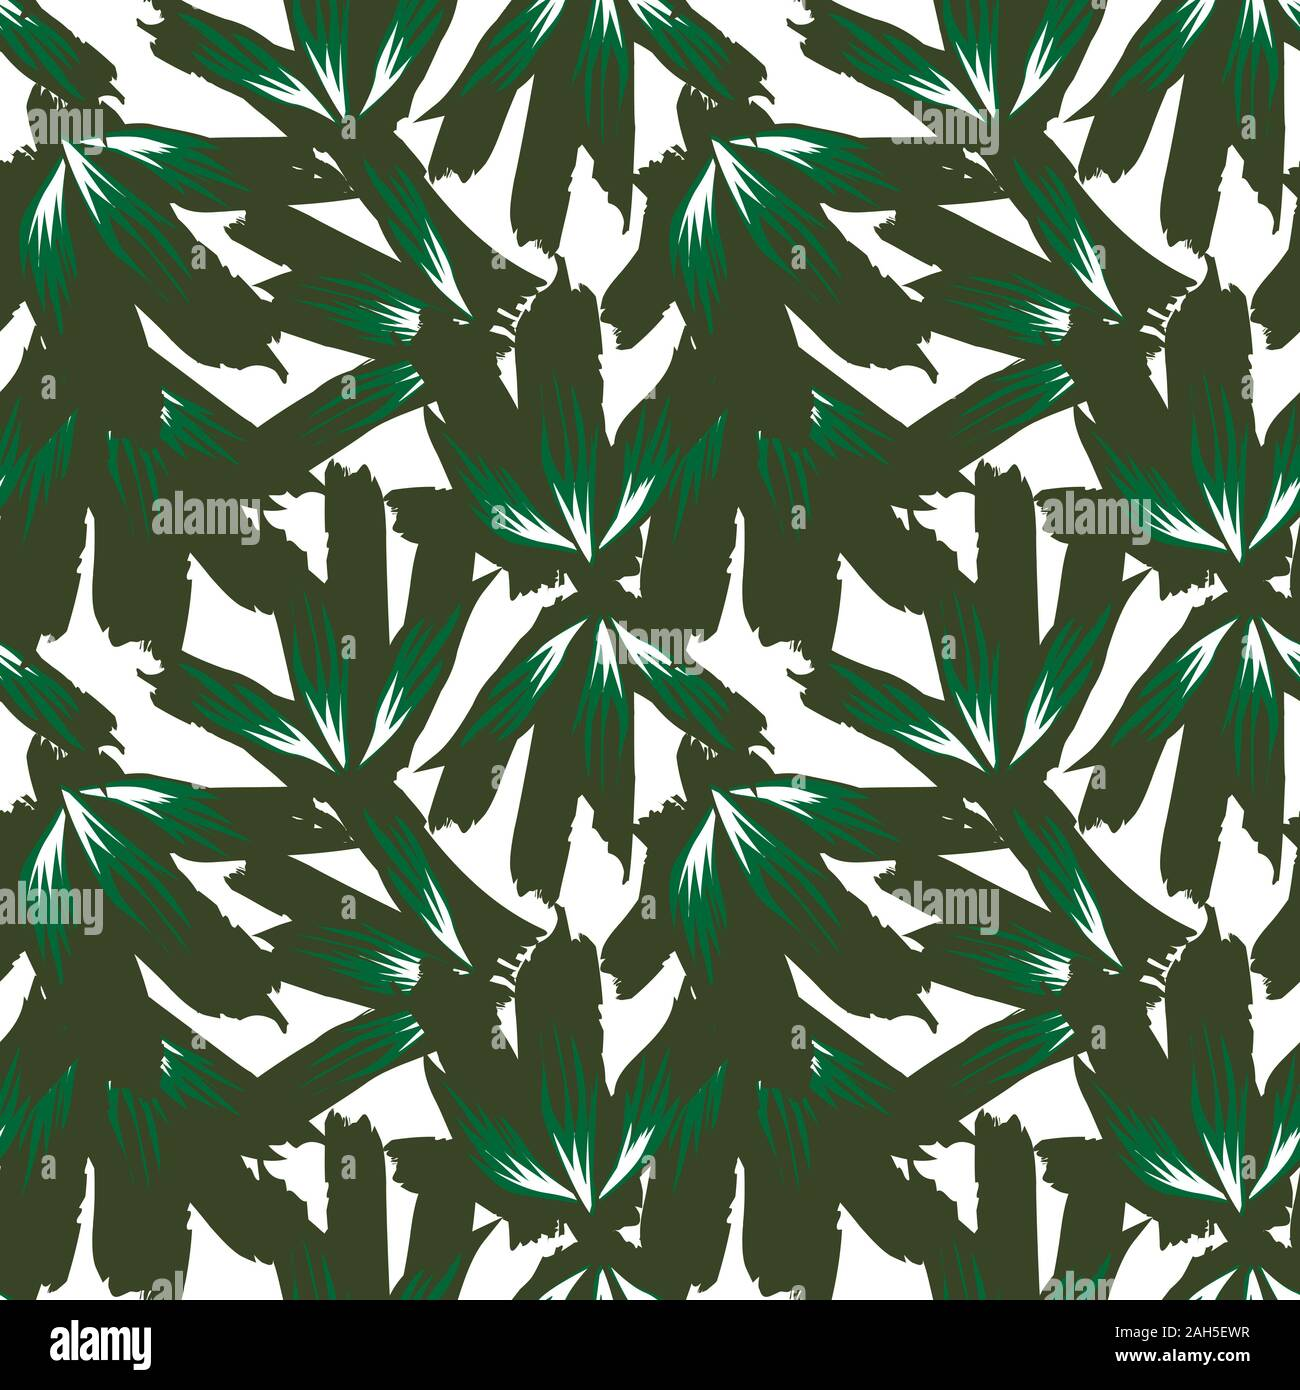 It Is A Tropical Floral Pattern Suitable For Fashion Prints